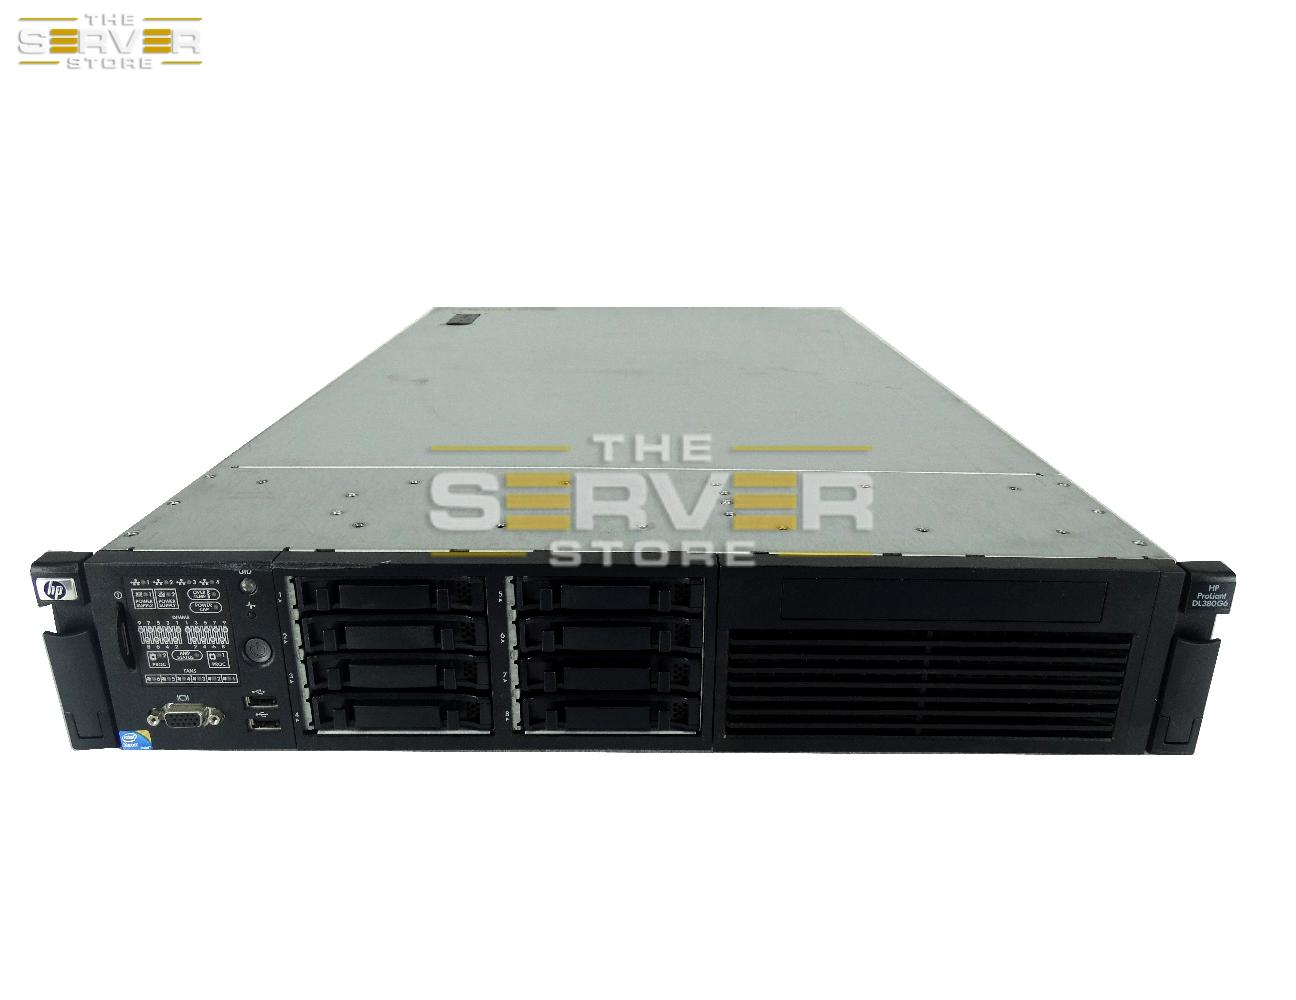 HP Proliant DL380 G6 8x SFF